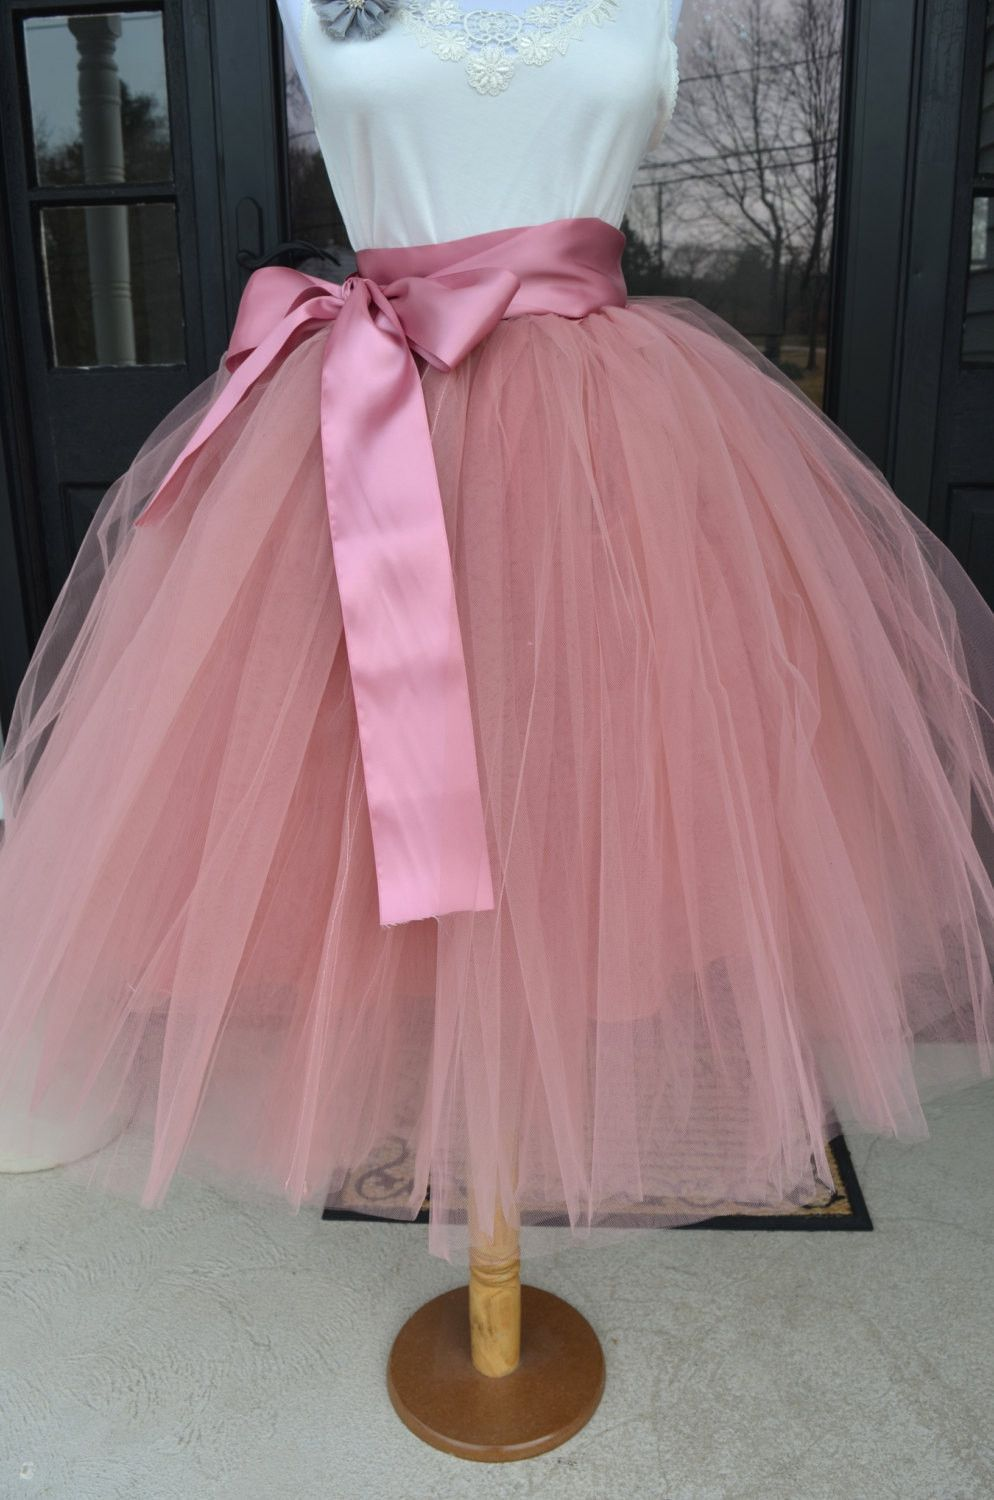 856bc7cf41 Beautiful tulle skirt made with a pretty rose pink tulle in women's sizes  including plus sizes. Skirt is made of 6 layers of the highest quality tulle  and ...